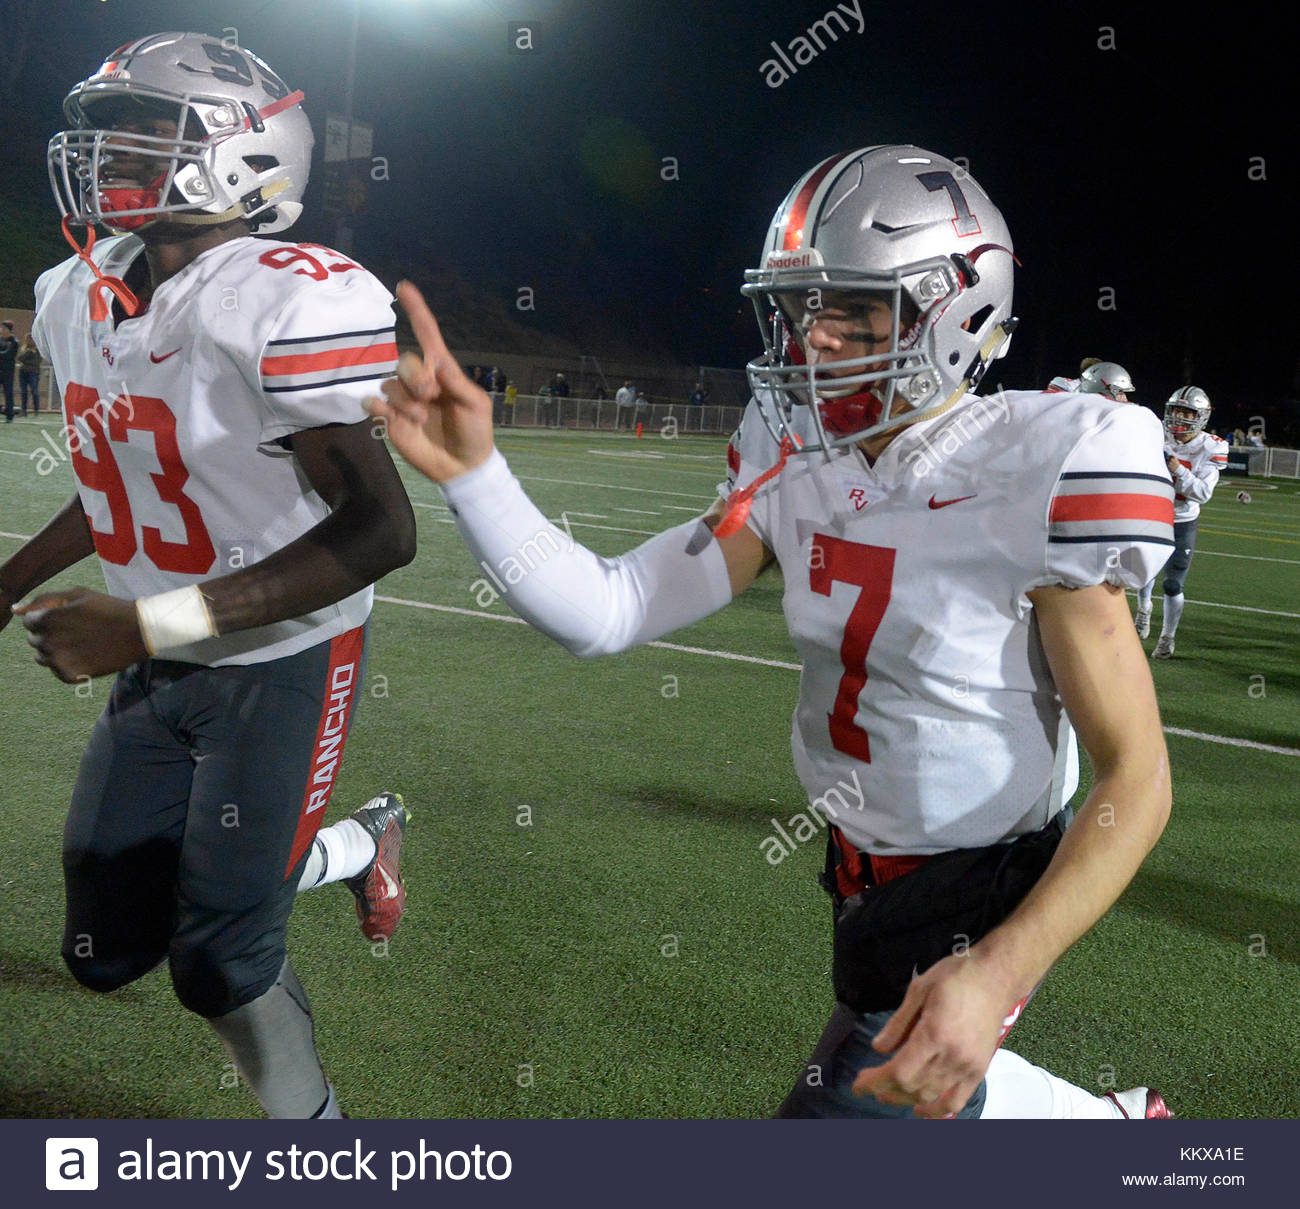 La Canada, California, USA. 1st Dec, 2017. Rancho Verde quarterback Brock White (7) holds hold is finger as they - Stock Image